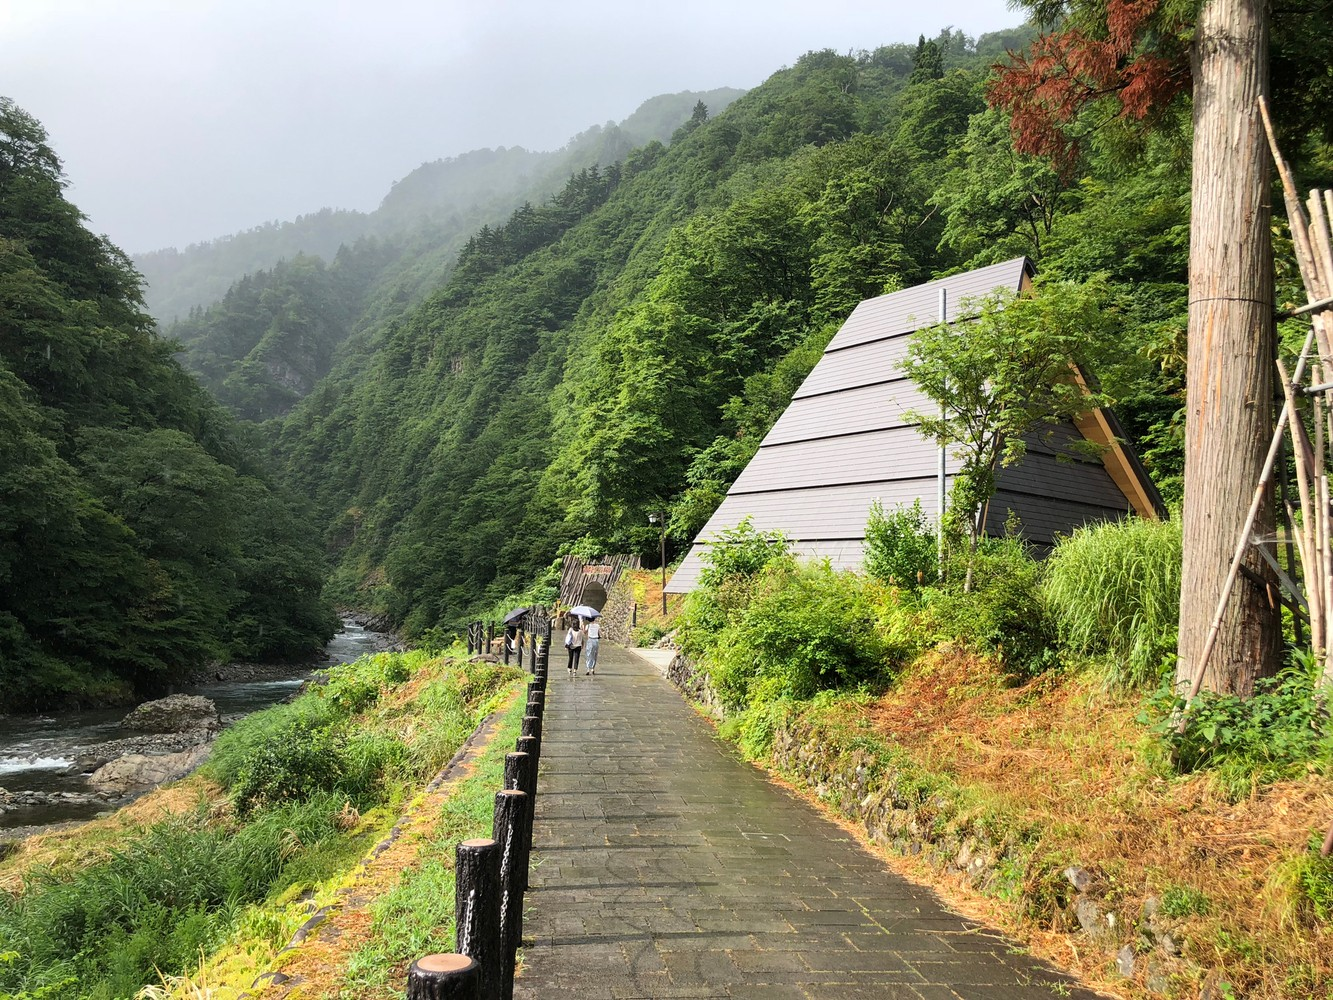 03_MAD_Echigo_Tsumari_Tunnel_of_Light_Periscope_low-res.jpg